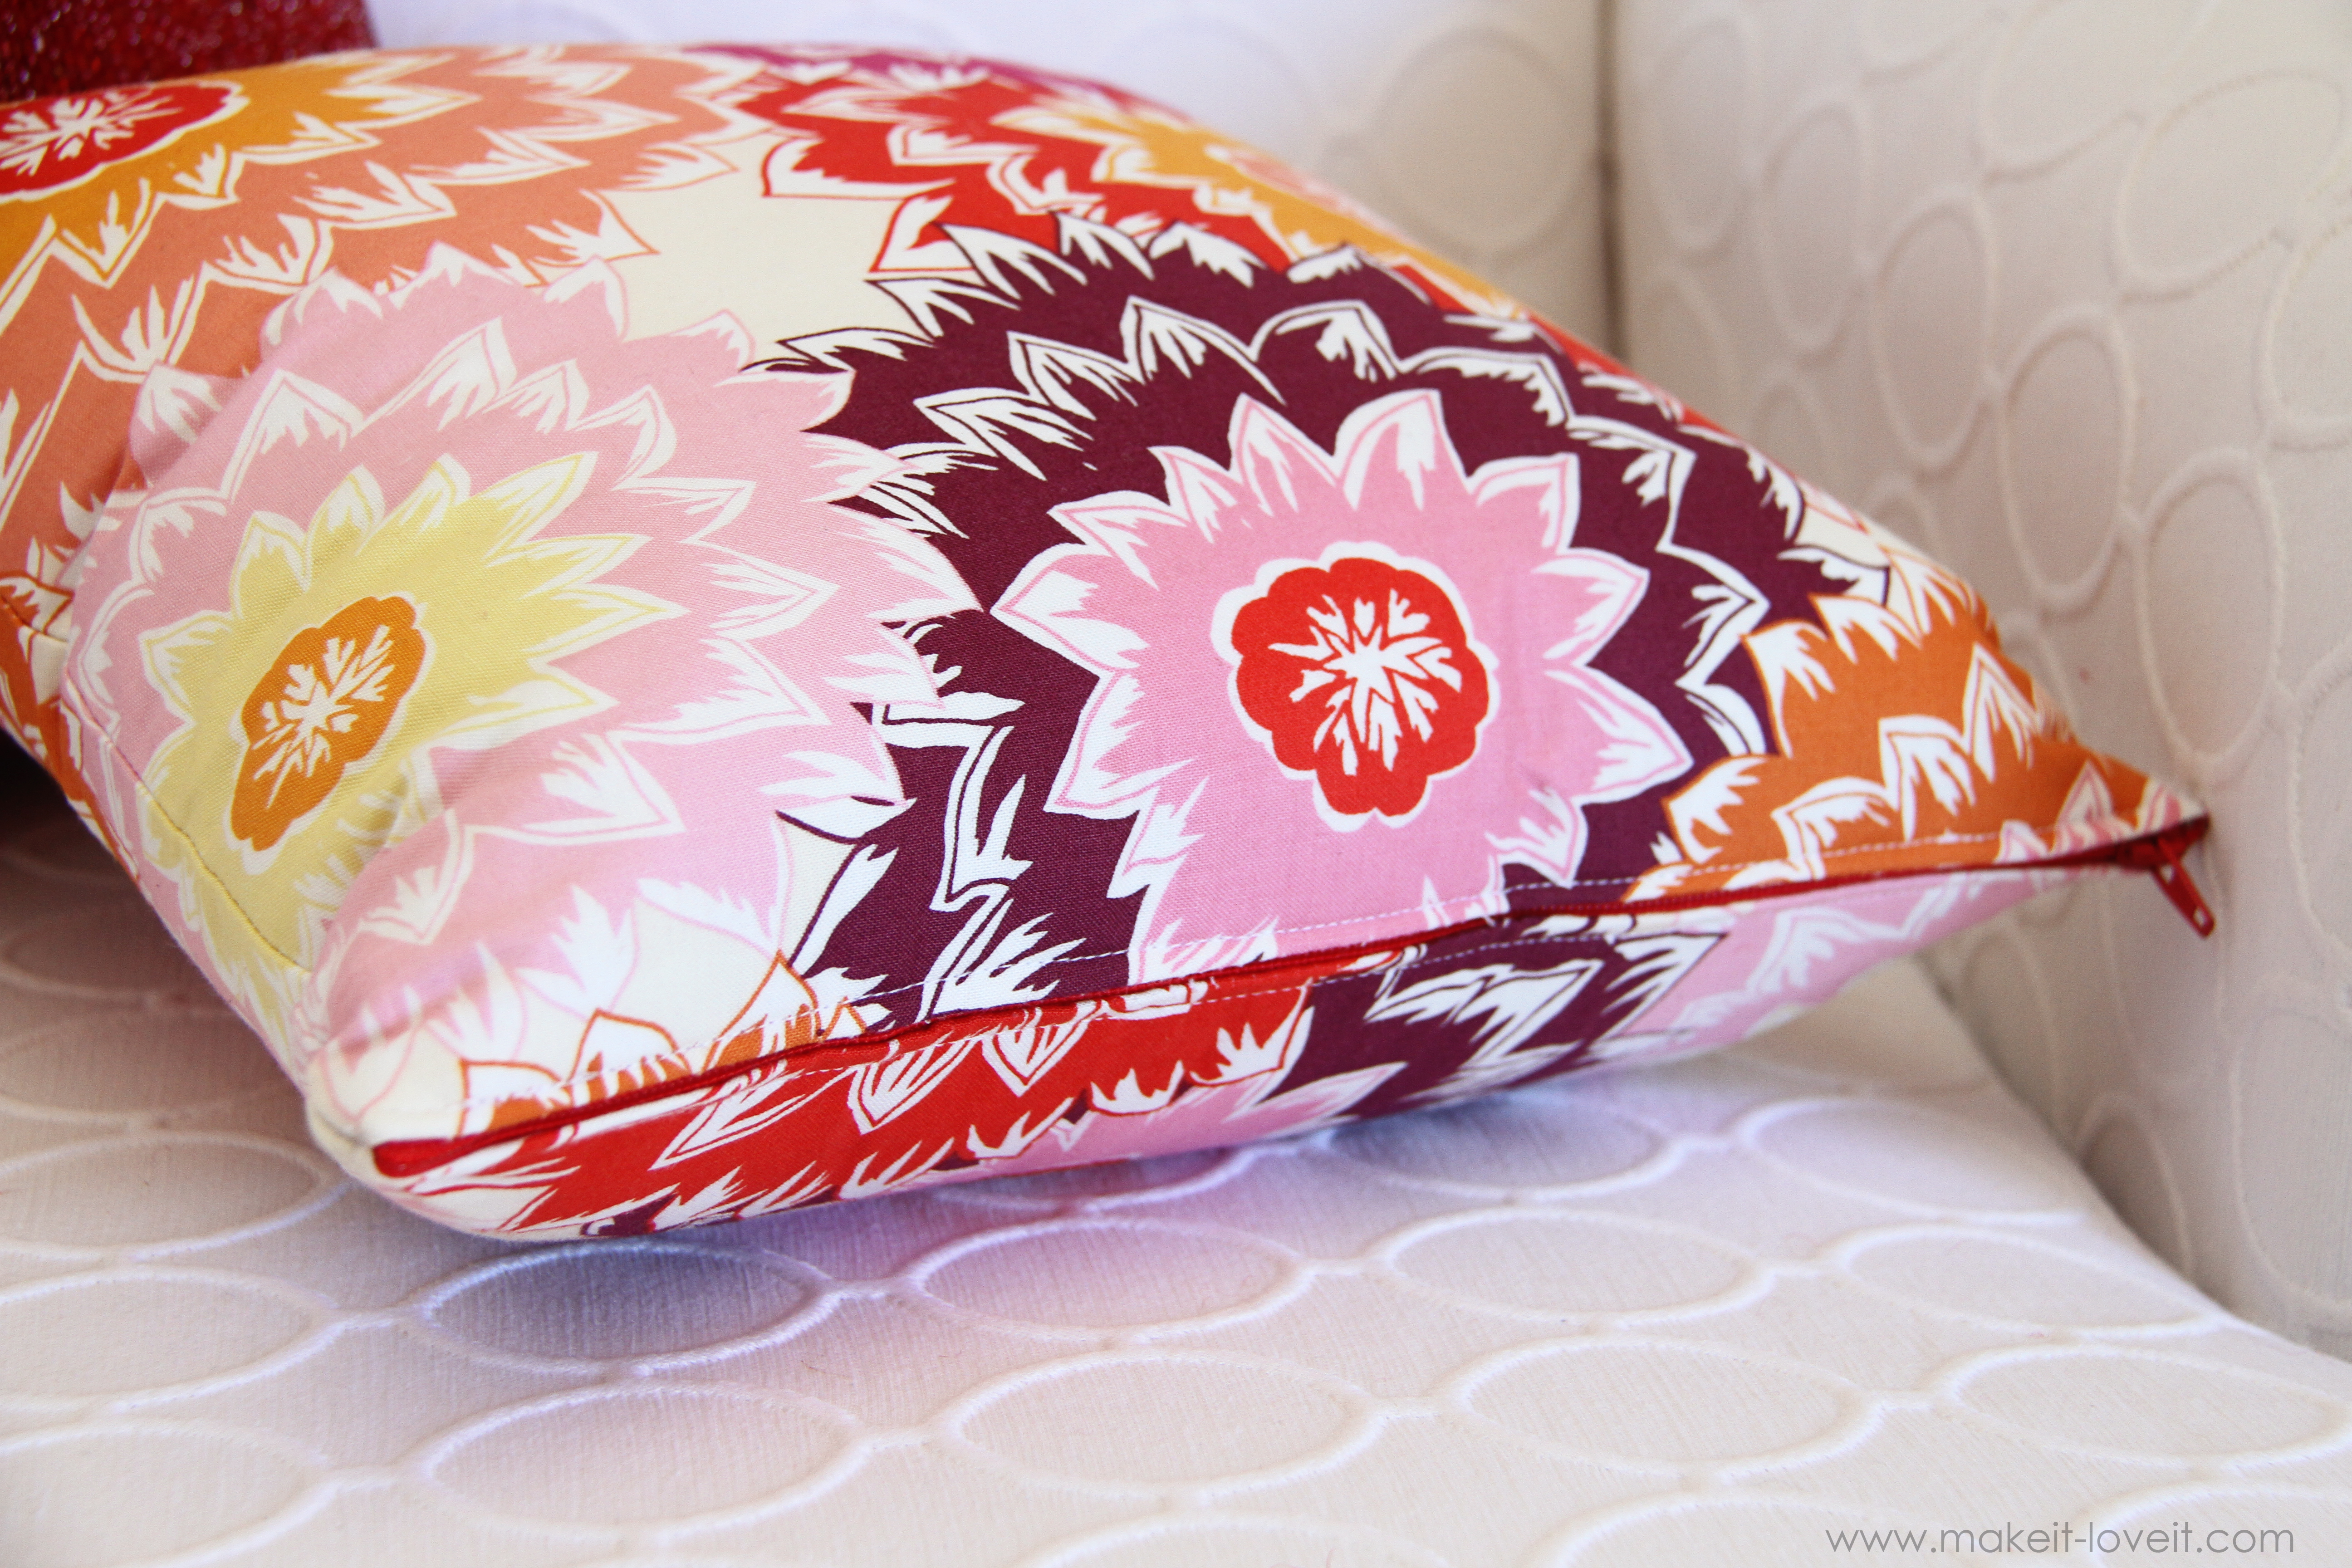 Making Pillow Cover With Zipper: Zippered Pillow Cover   Make It and Love It,